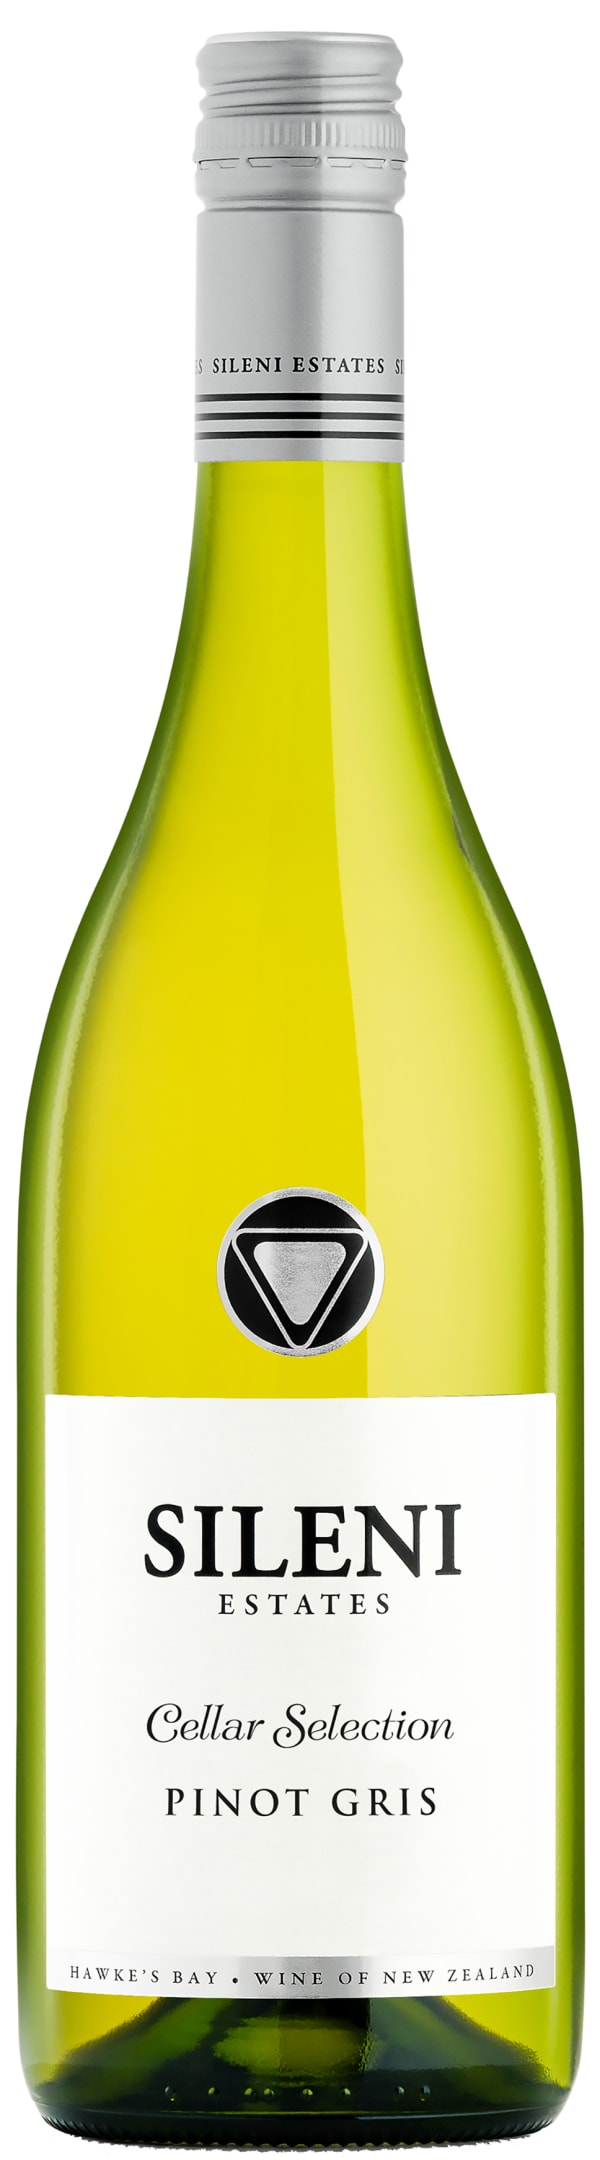 Sileni Cellar Selection Pinot Gris 2018